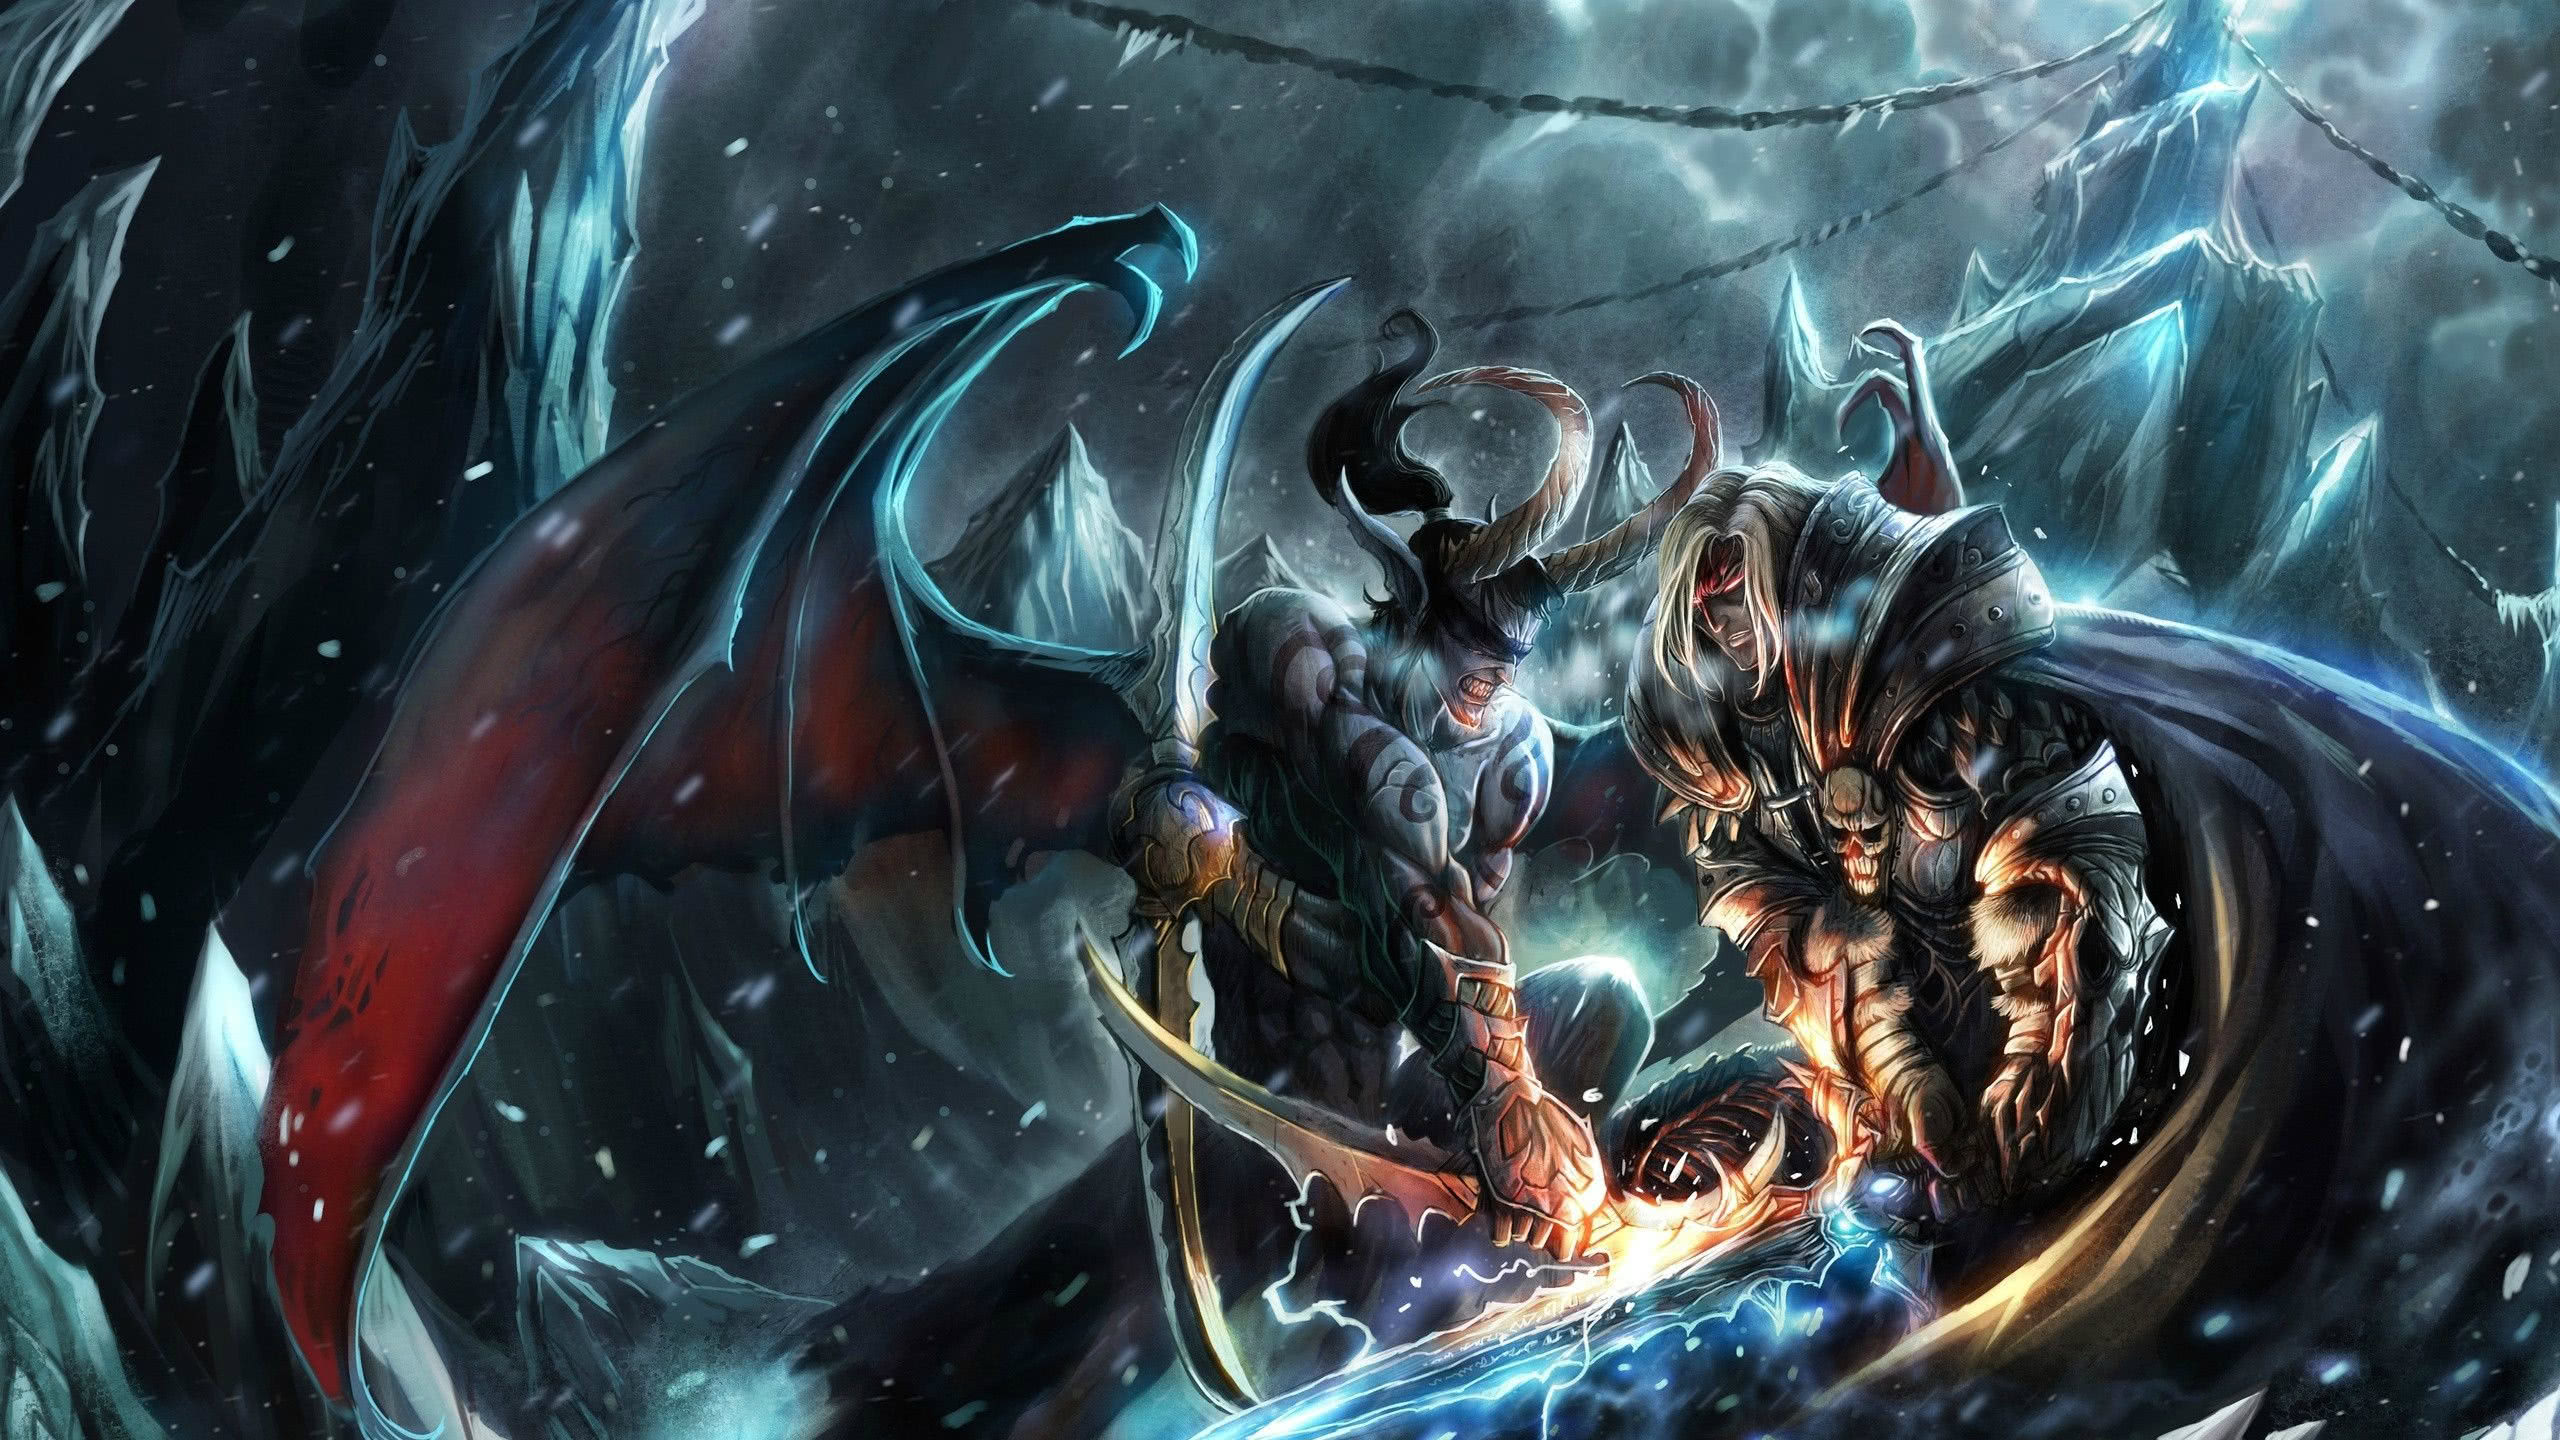 Warcraft Arthas Vs Illidan In Northrend Wqhd 1440p Wallpaper